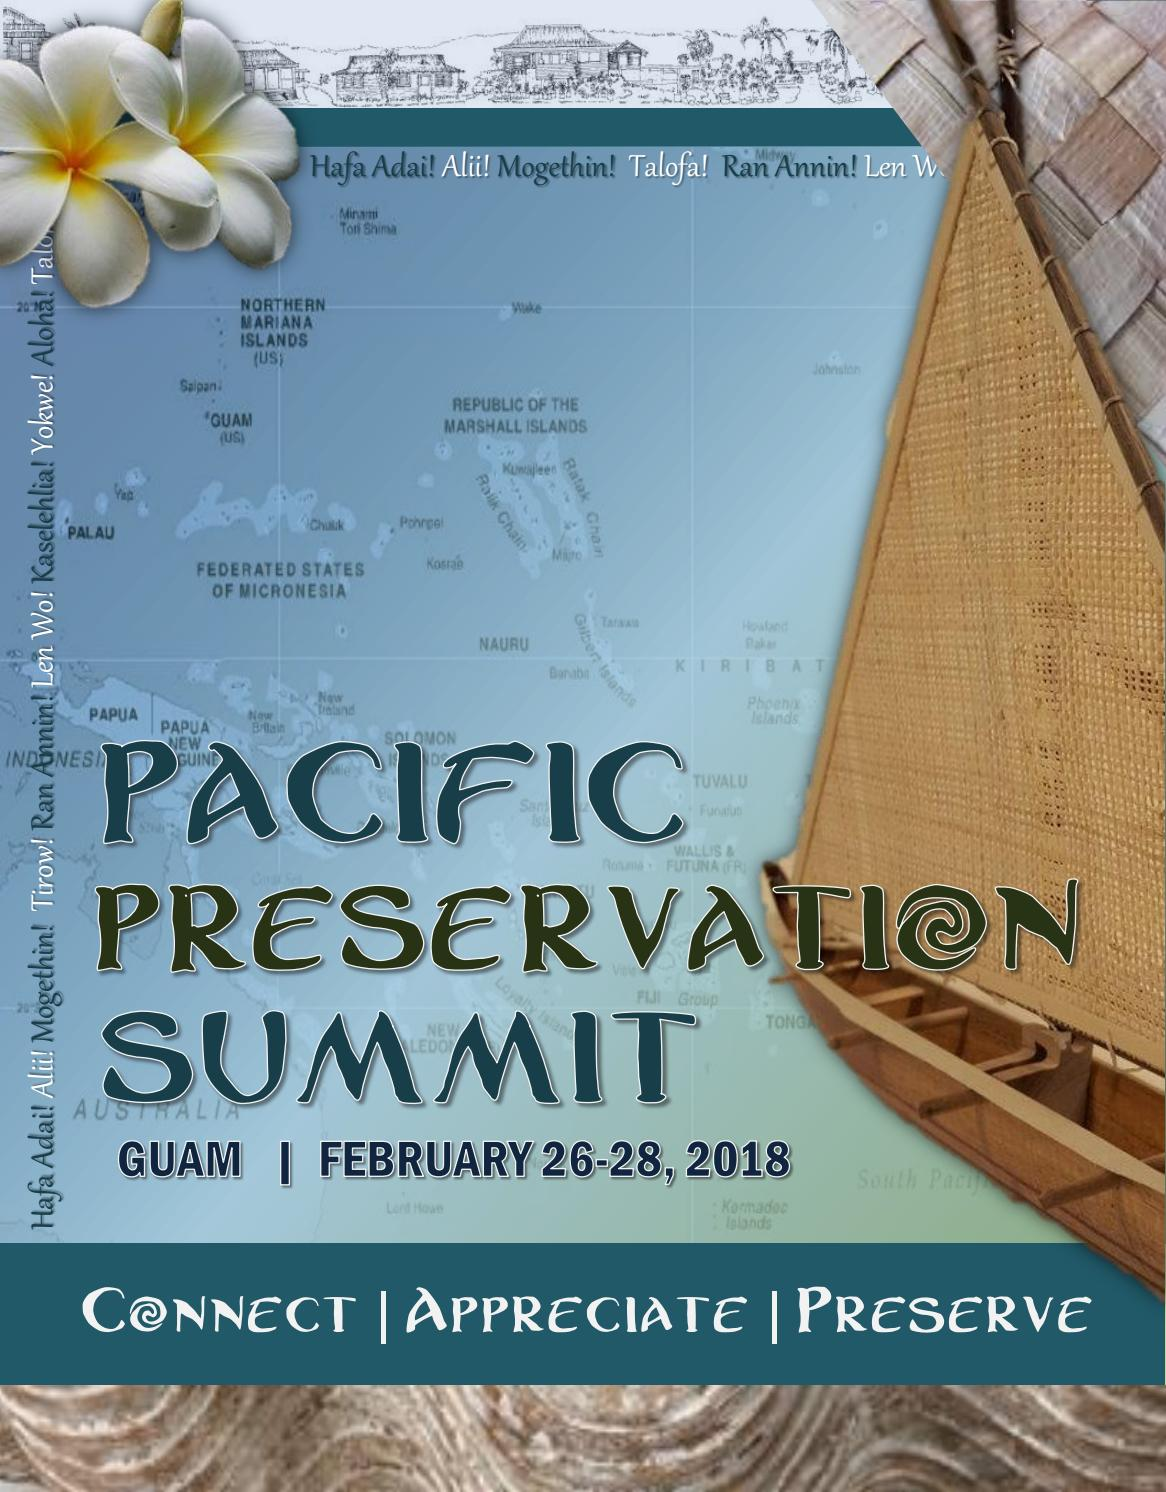 Pacific Preservation Summit 2018 Guam Program Booklet By Lawrence Borja Issuu